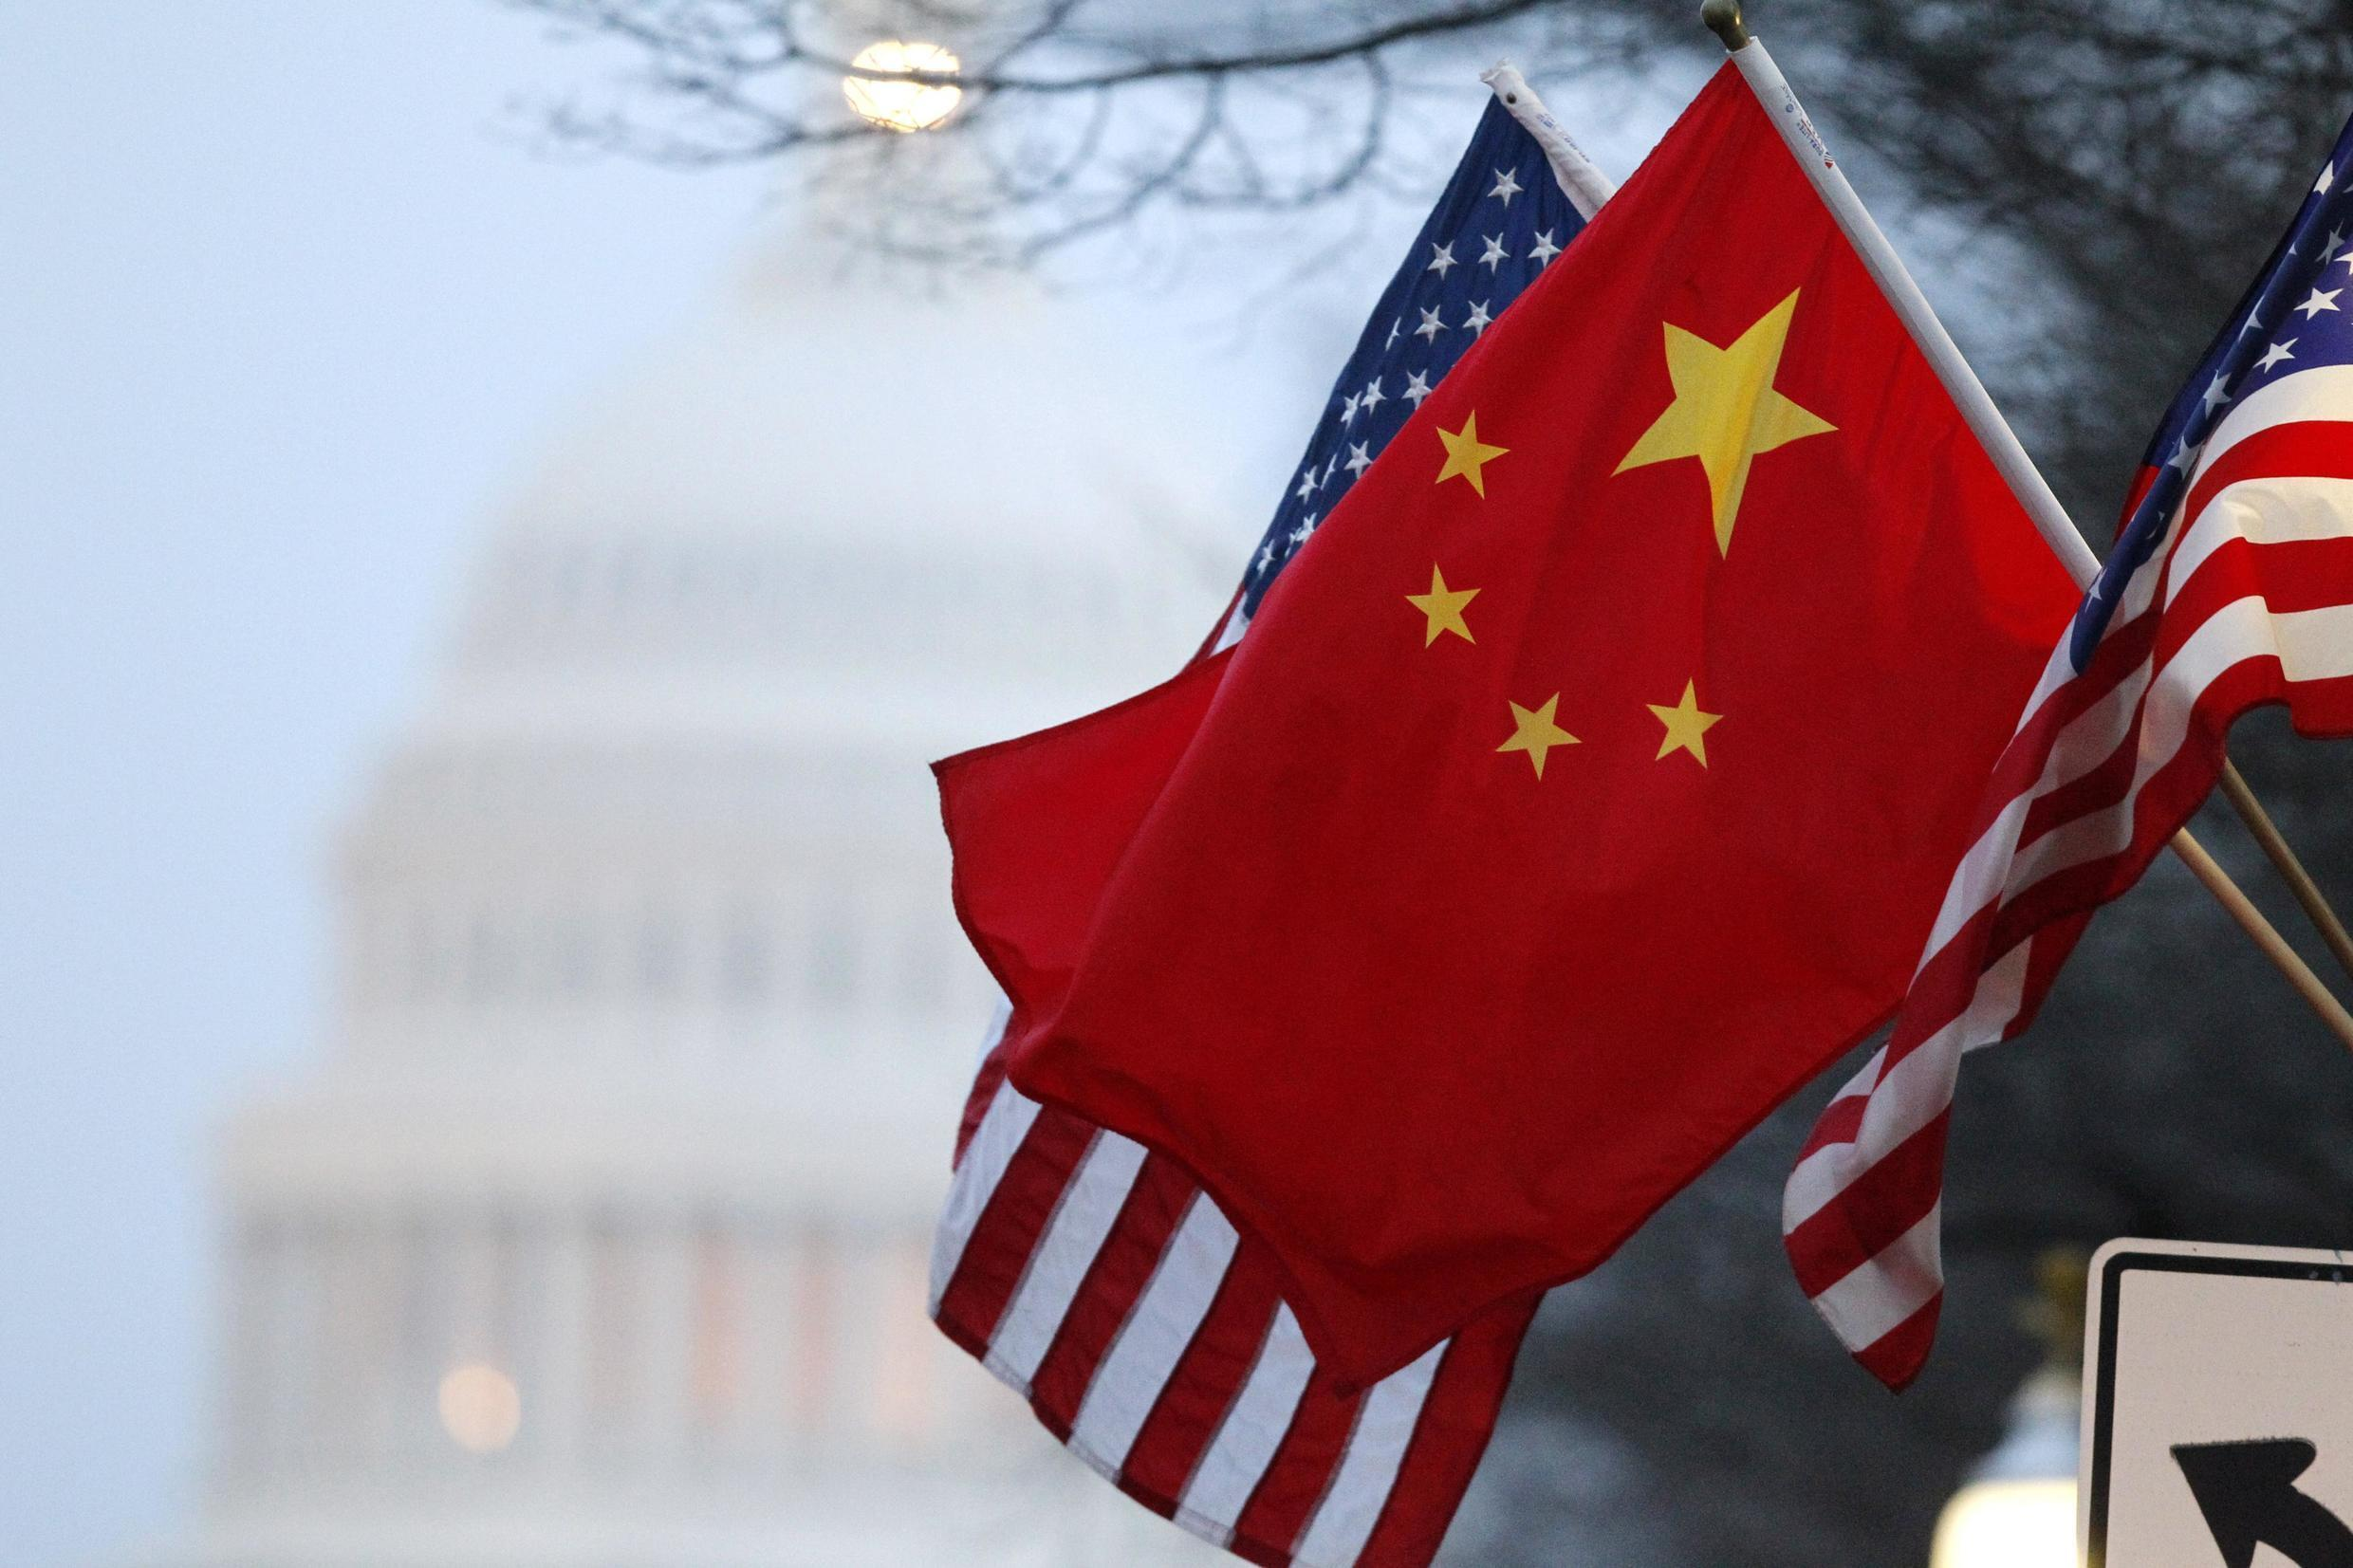 The People's Republic of China flag and the U.S. Stars and Stripes fly along Pennsylvania Avenue near the U.S. Capitol in Washington during Chinese President Hu Jintao's state visit in this January 18, 2011 file photo. Today, relations are less cordial and a first summit between US President Joe Biden and his Chinese counterpart Xi Jinping is still to happen.